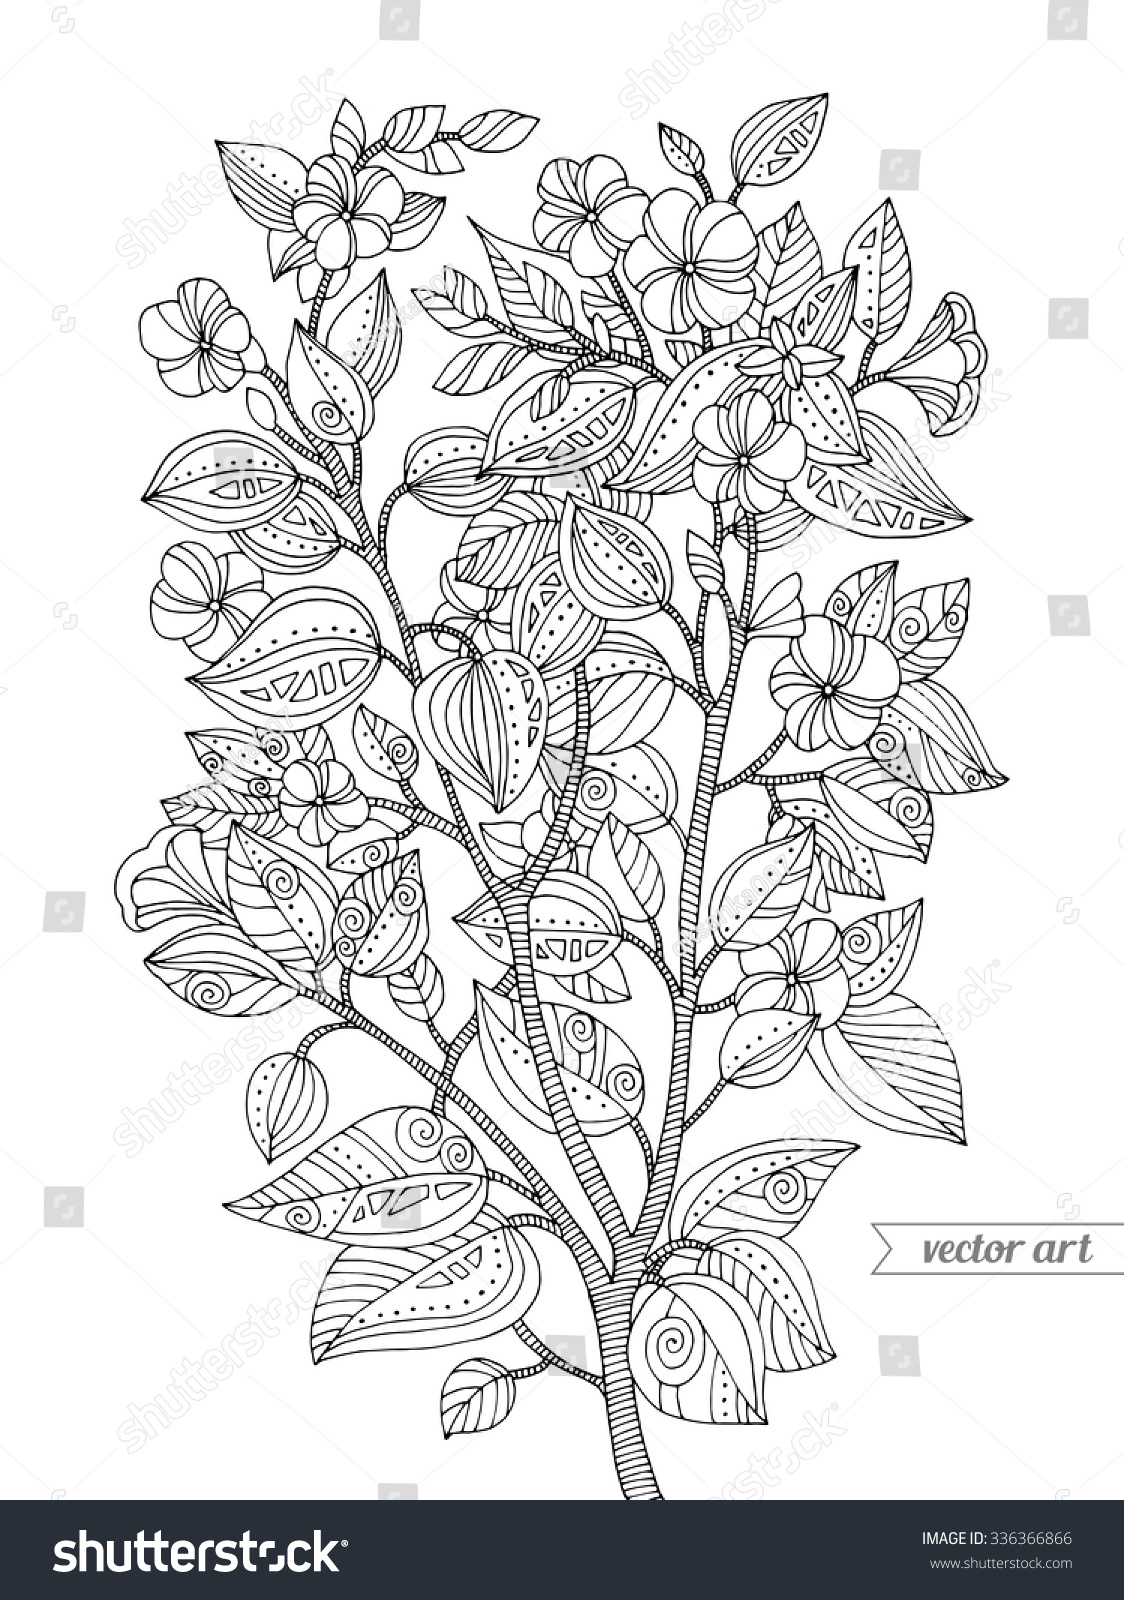 royalty free forest exotic jungle flowers plant u2026 336366866 stock